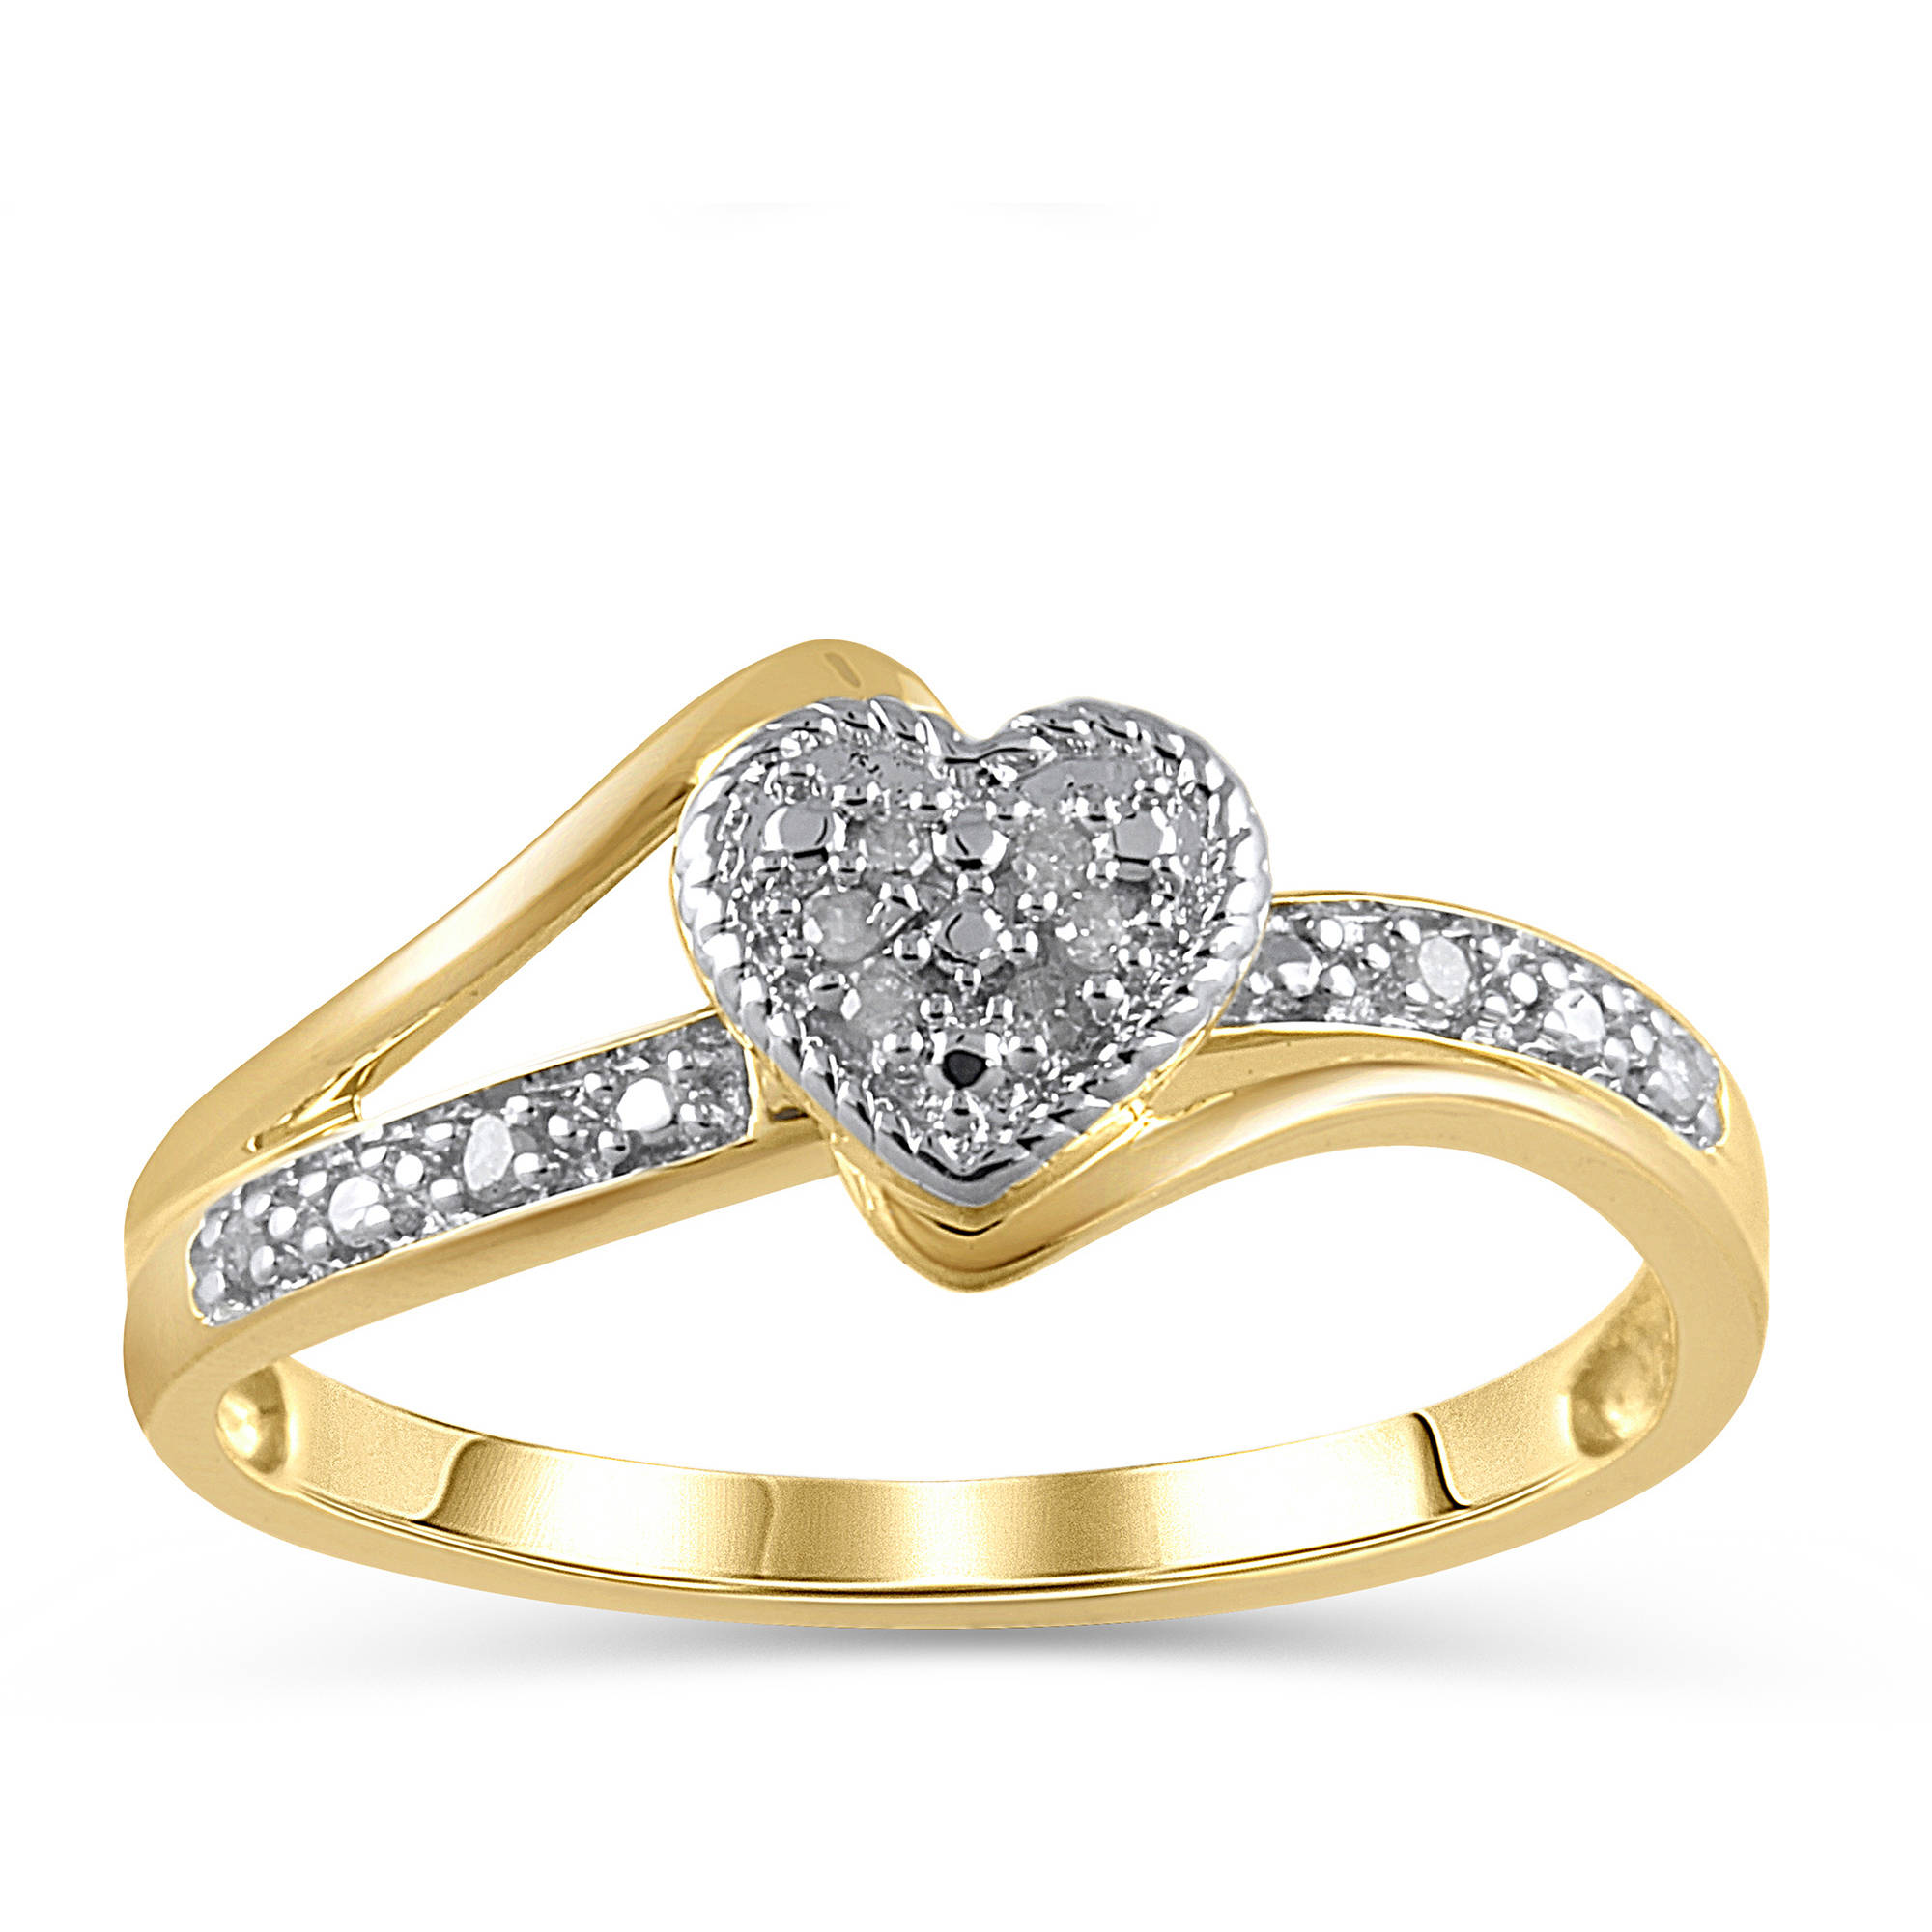 Diamond accent rings for Lindenwold fine jewelers jewelry showroom price